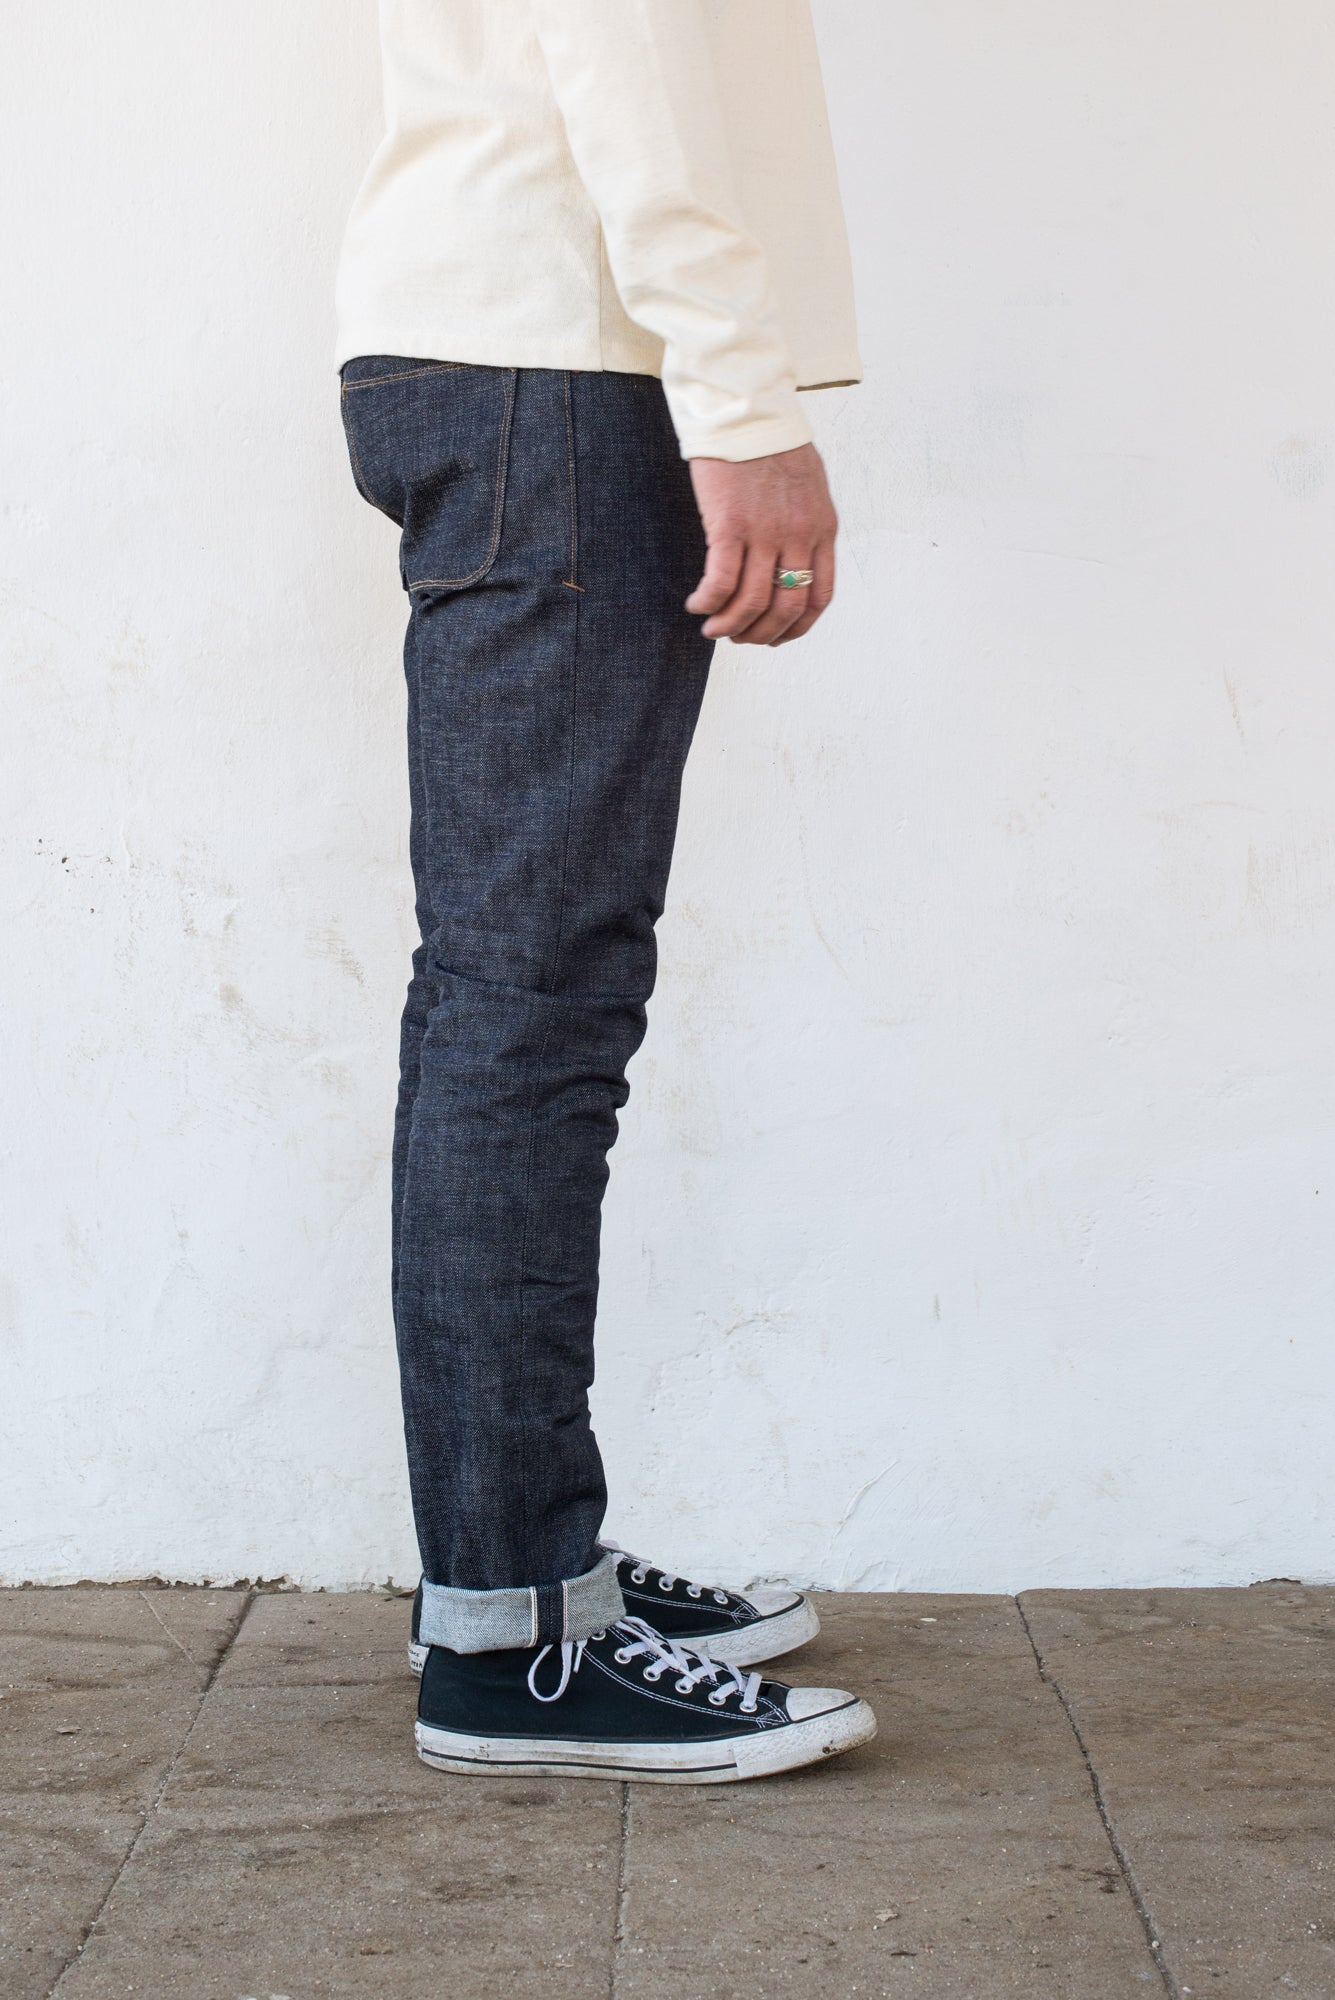 Freenote Cloth | Avila 13 oz Natural Indigo On Body (rs) | $250